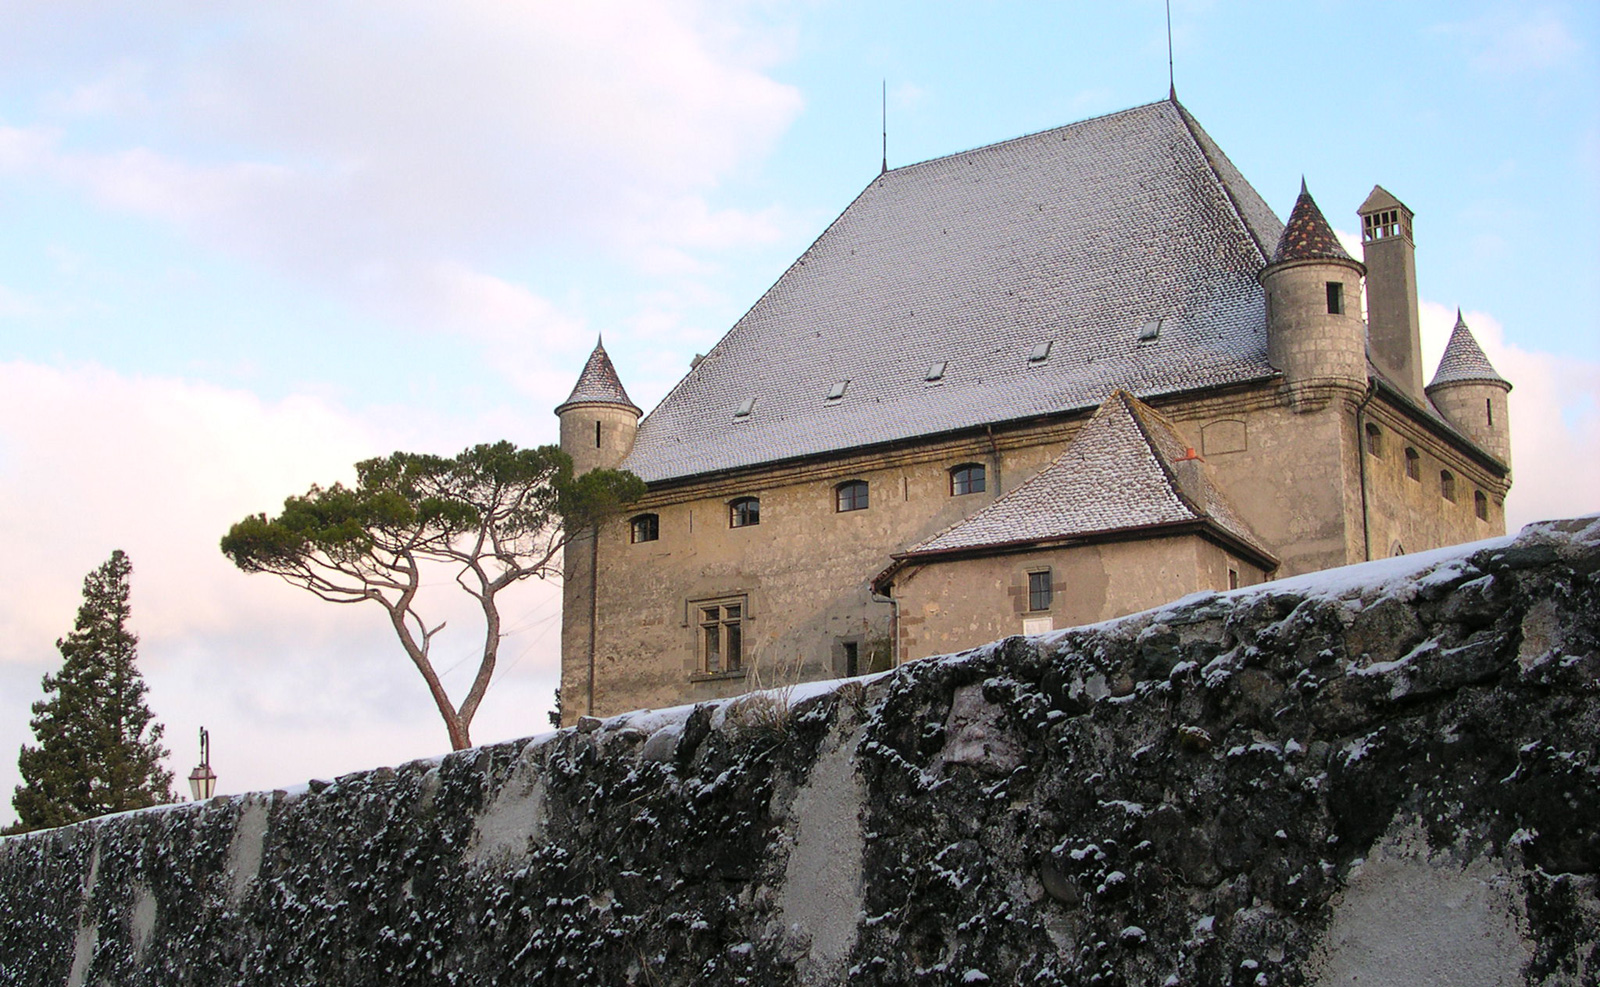 Yvoire castle under the winter snow